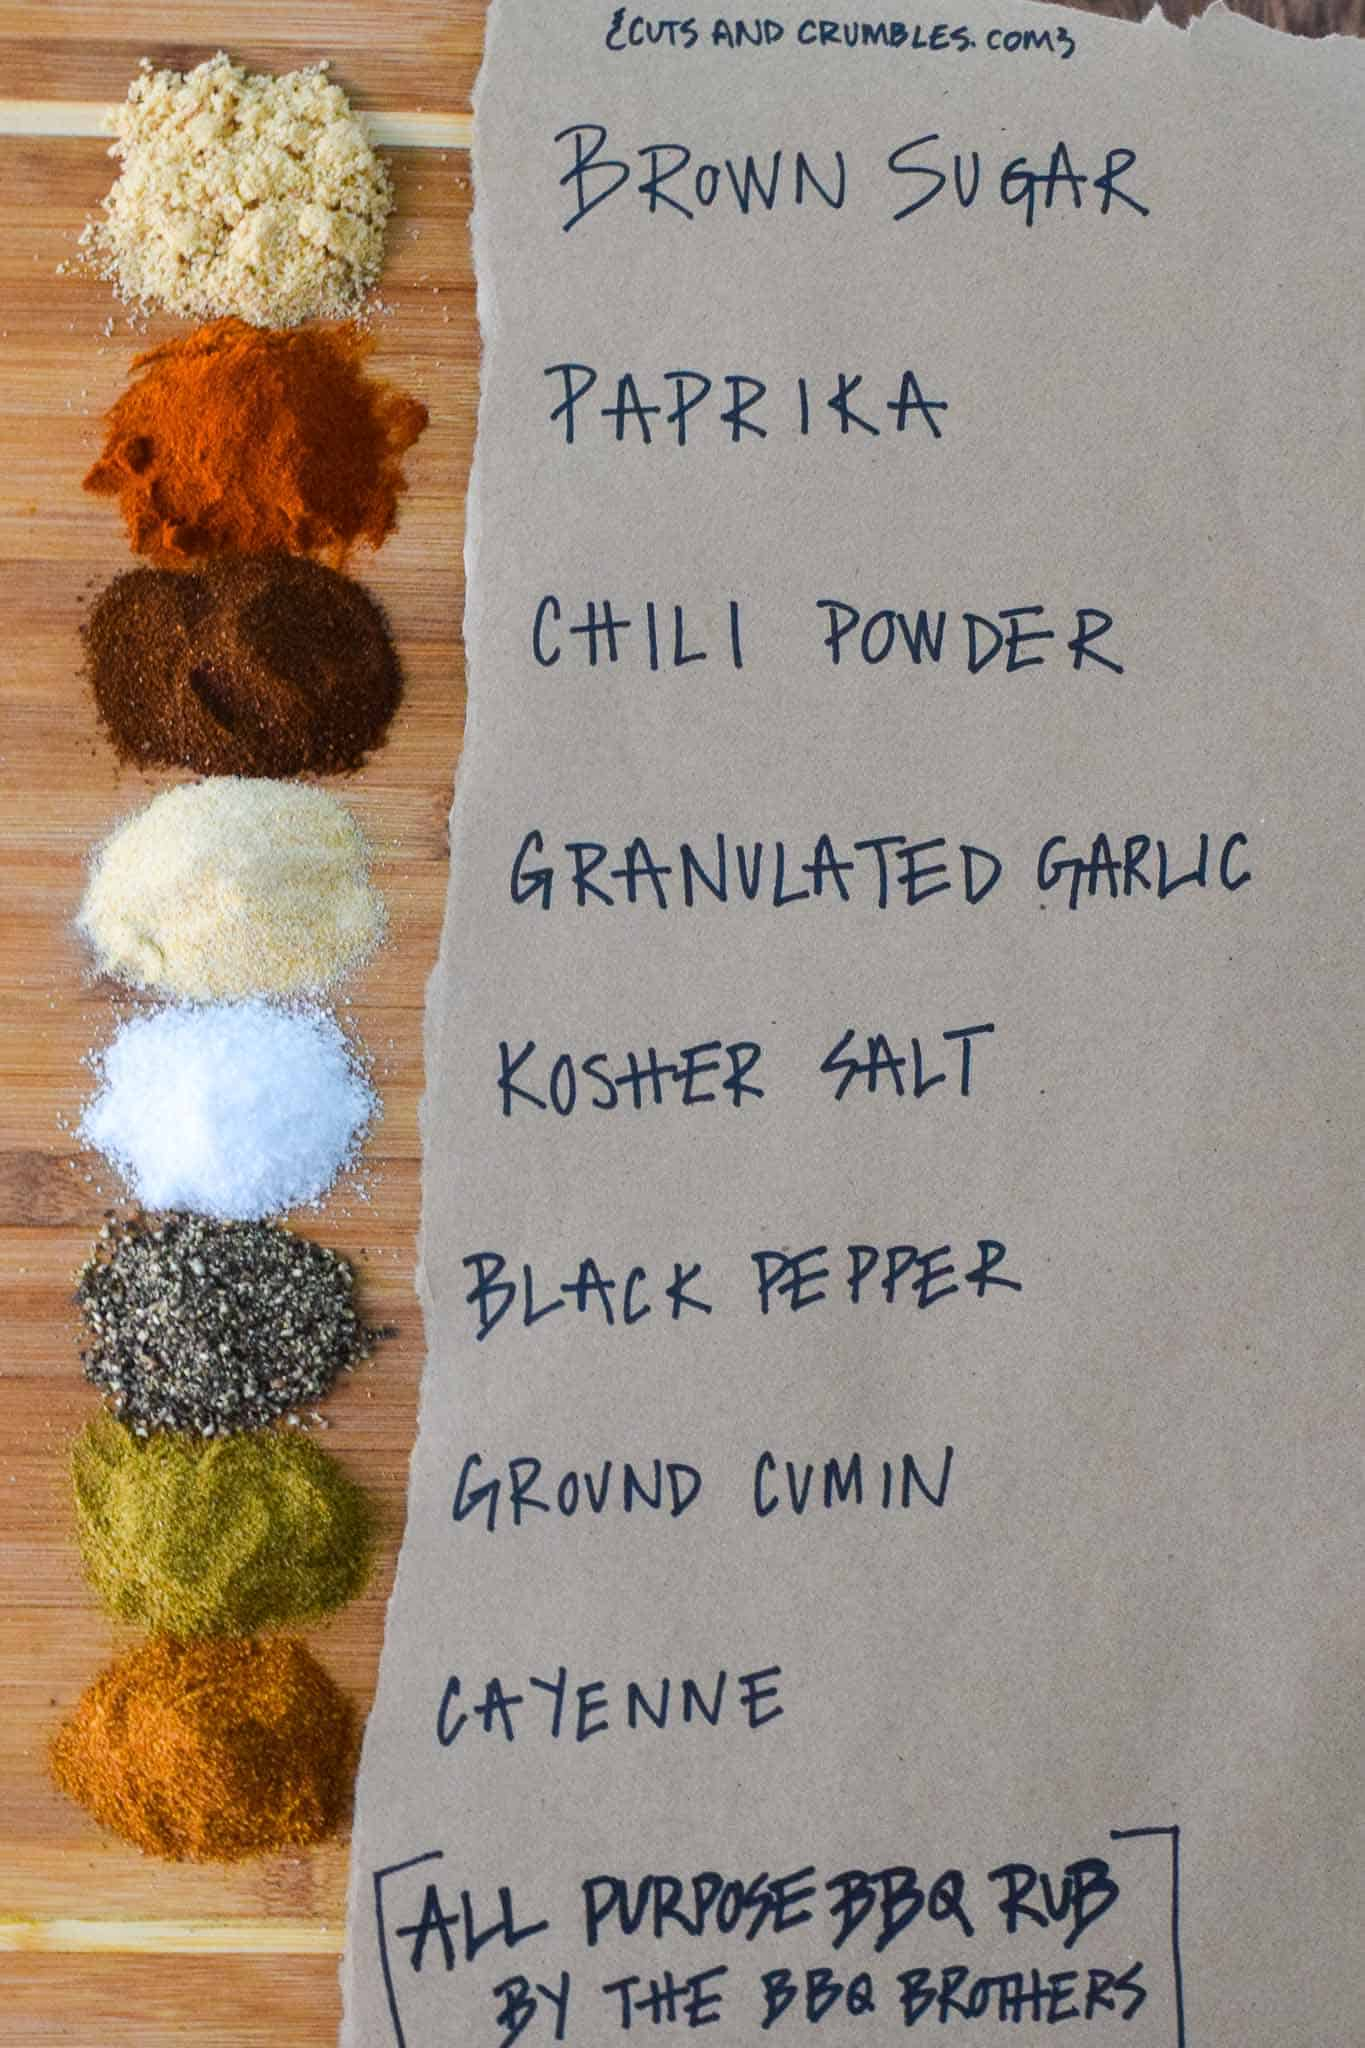 All Purpose BBQ Rub ingredients on wood board with titles written beside them on brown paper overhead shot